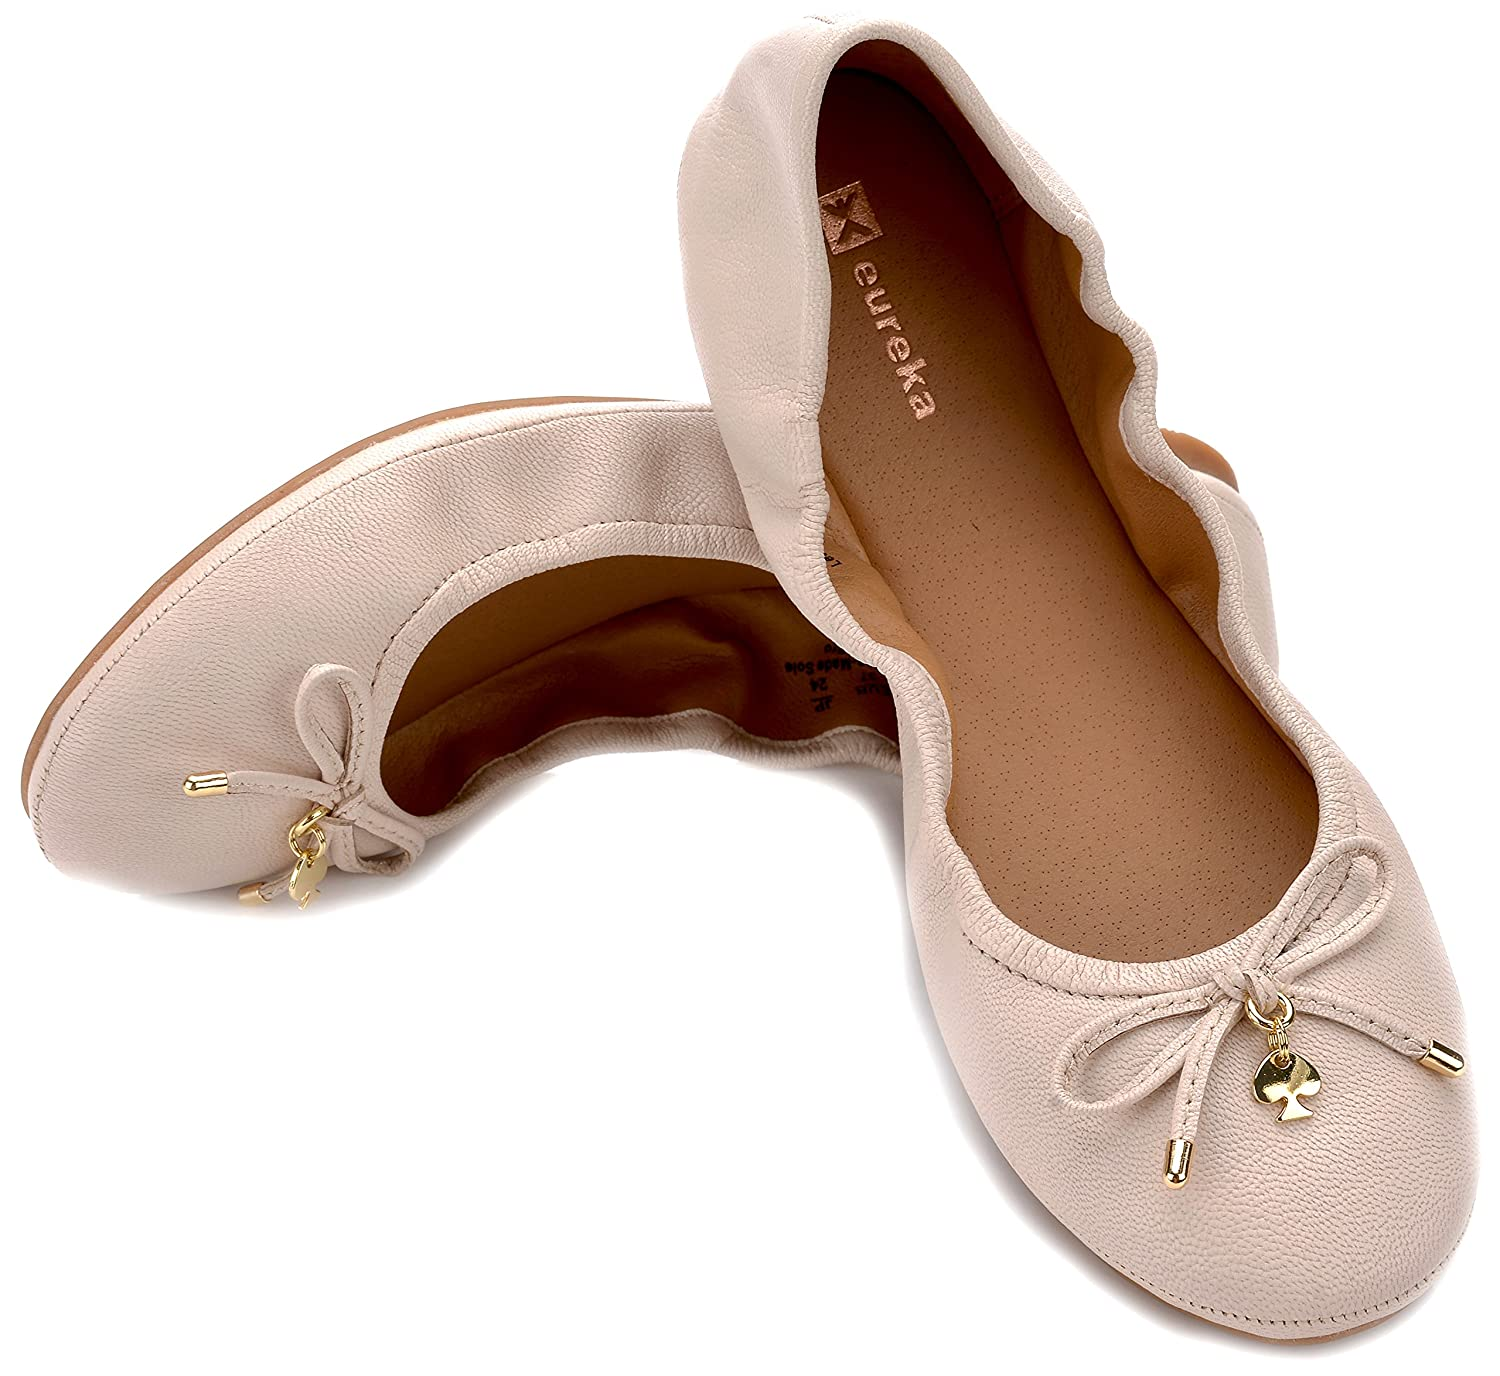 Eureka USA Women's Universe Leather Ballet Flat B074V3842M 8 B(M) US|402 Chiffon White